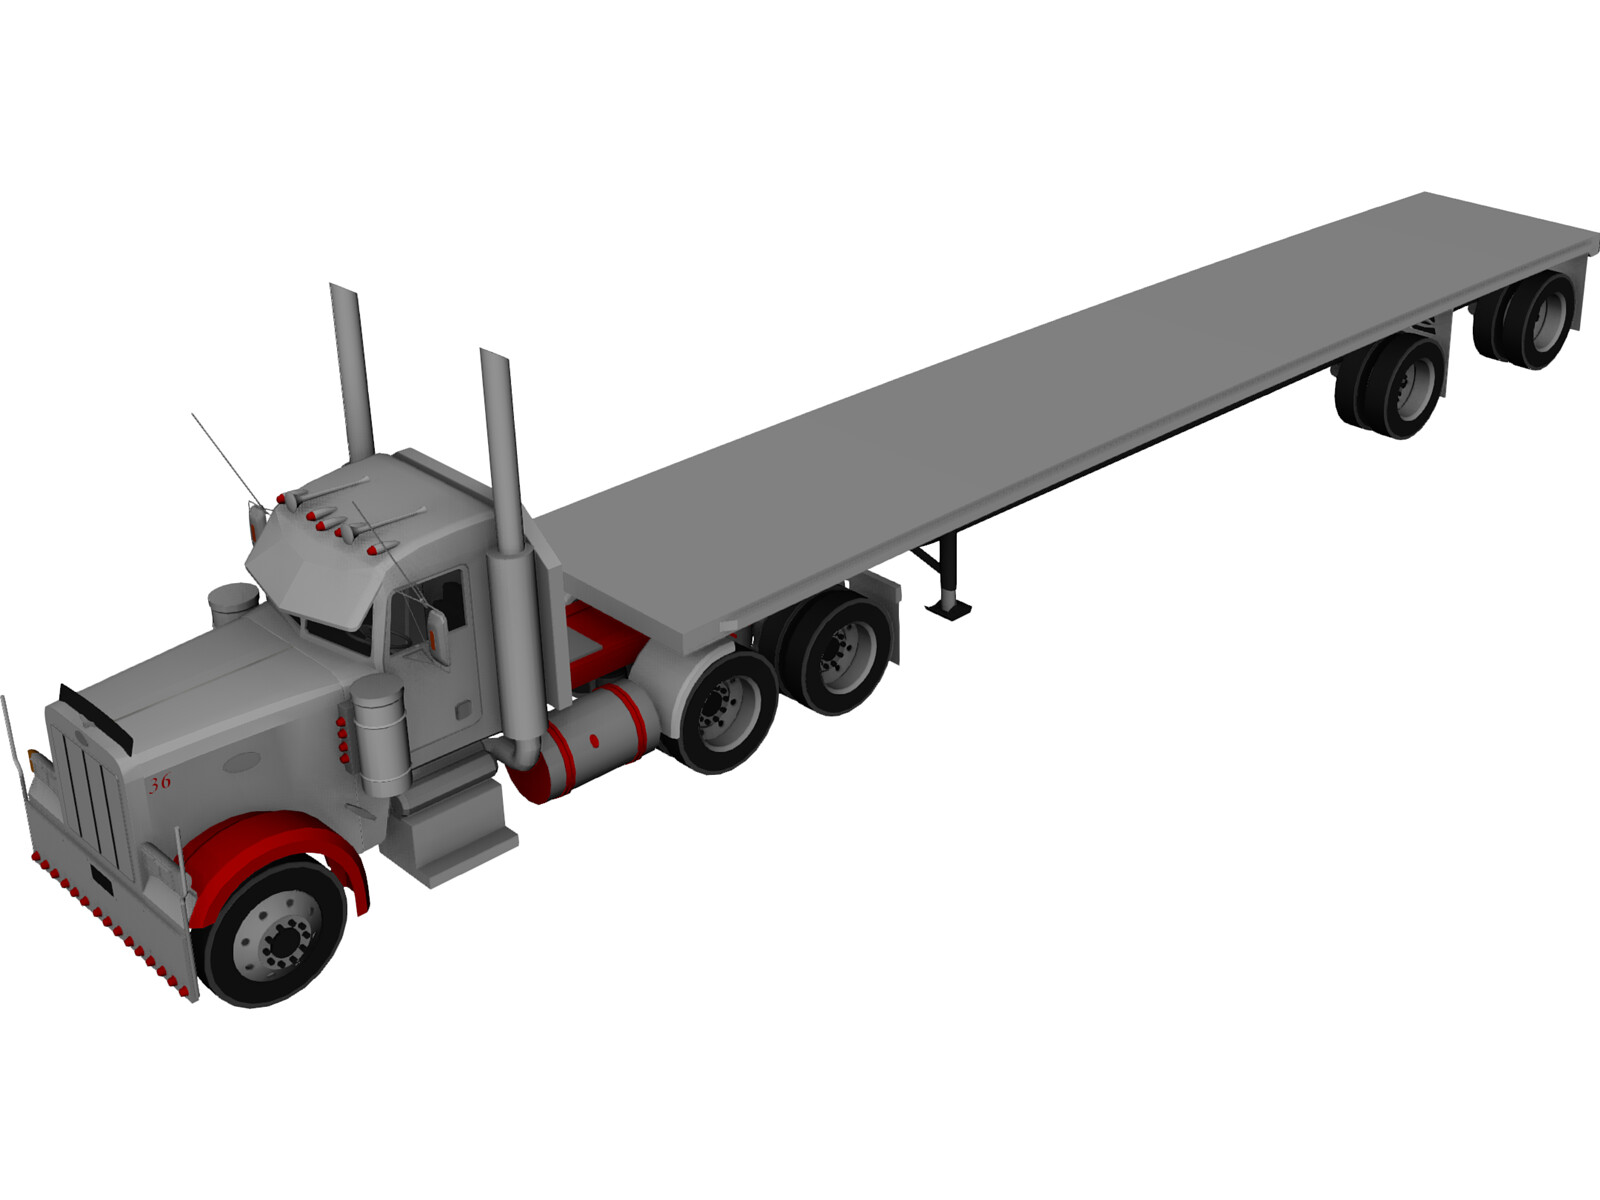 Peterbilt Semi Tractor-Trailer 3D Model